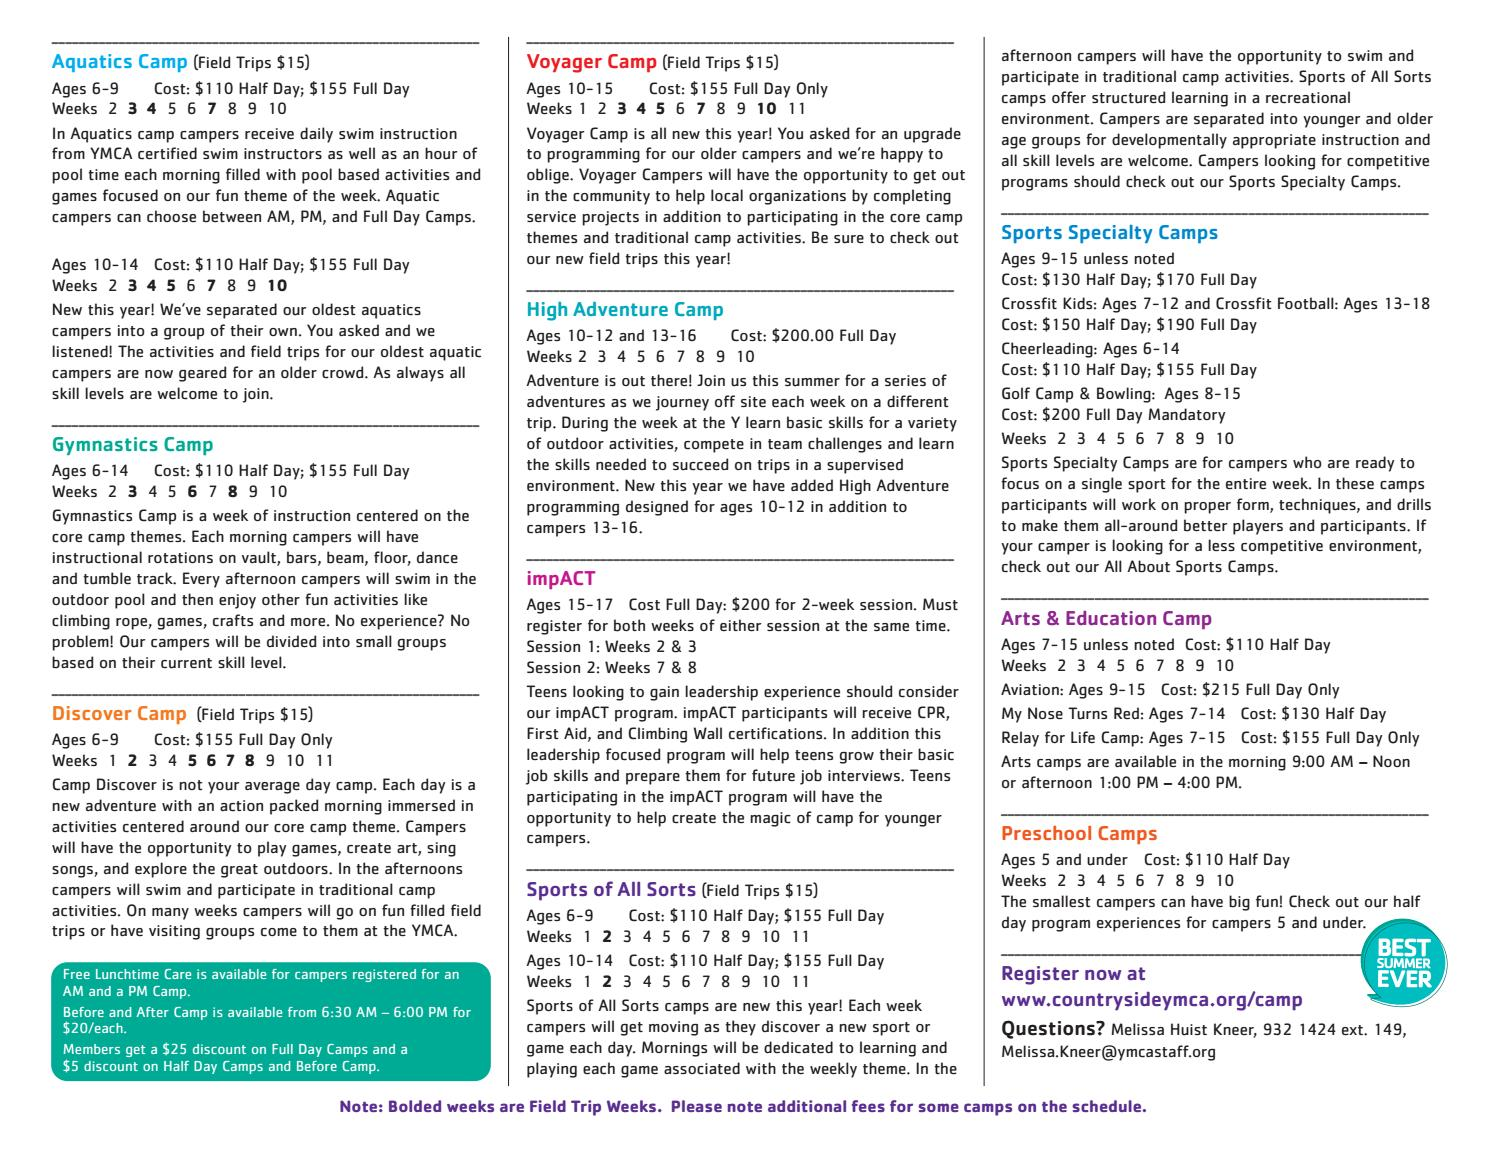 Ymca Camp Countryside Schedule 2017 Lebanon By Countryside Ymca Issuu